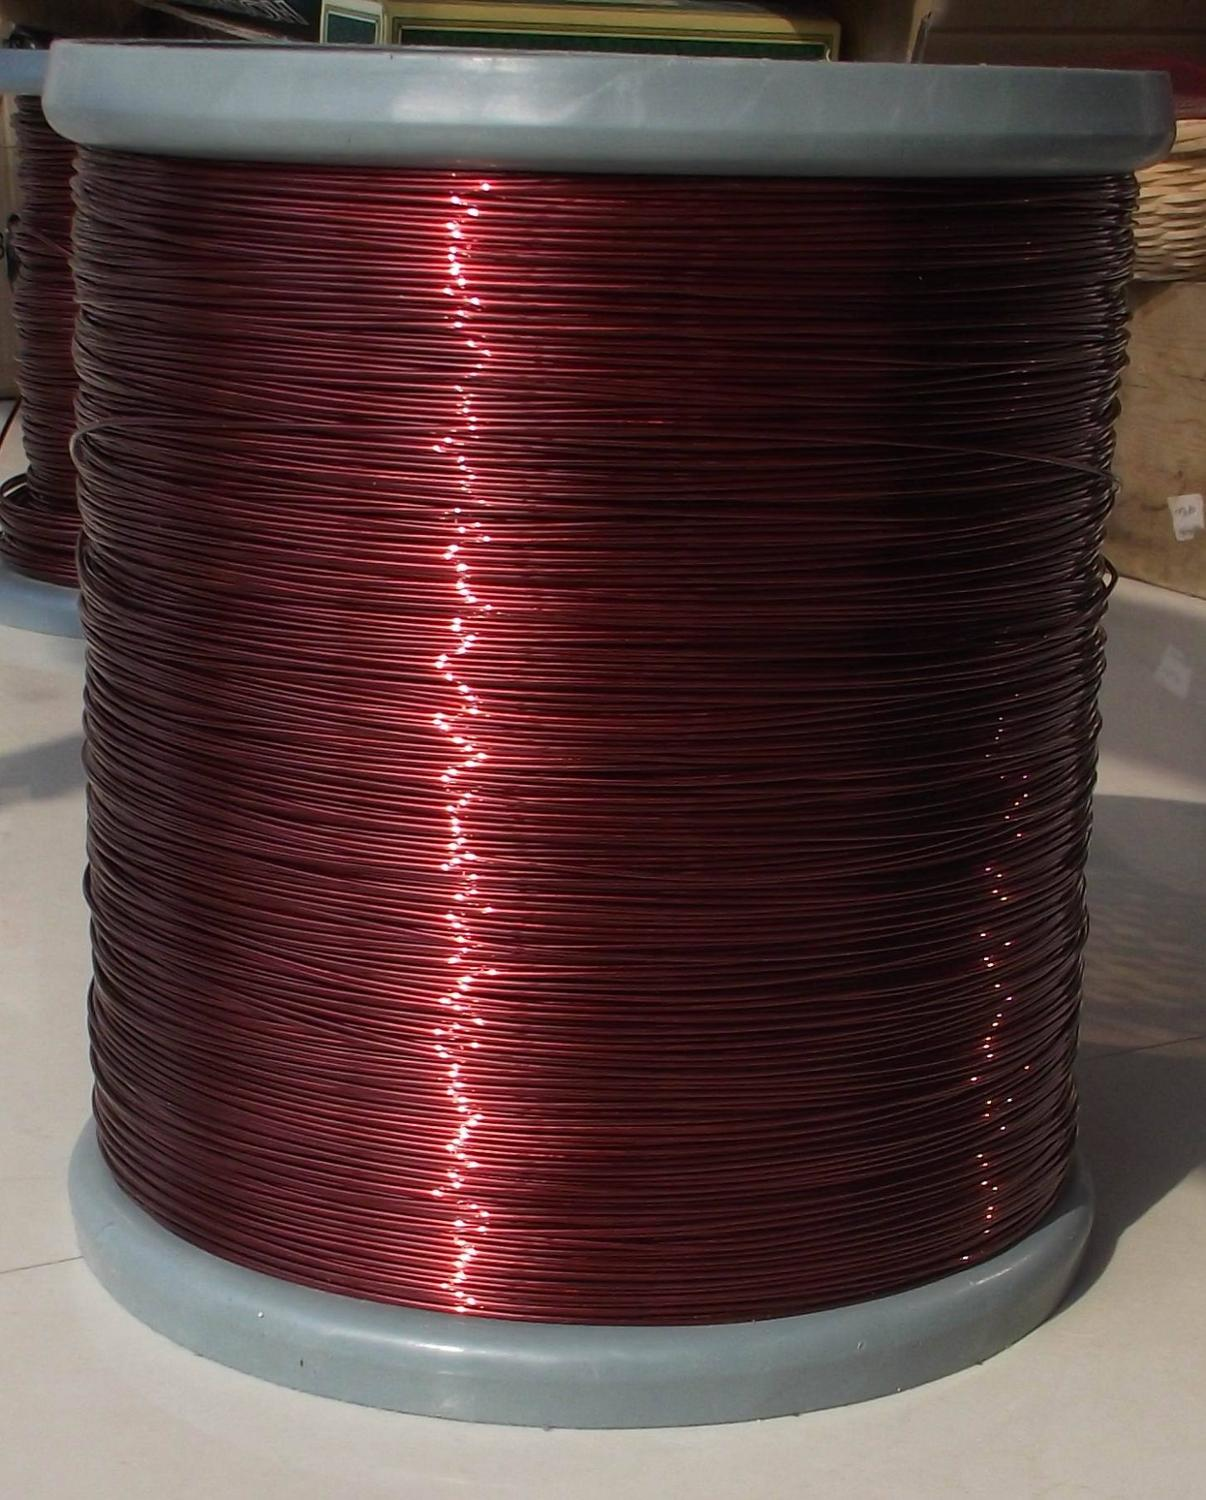 100 Meters/lot 0.64mm Mm QZY High-temperature Enameled Wire Enamelled Round Copper Wire, QZY-2-180 Temperature Of 180 Degrees Ce